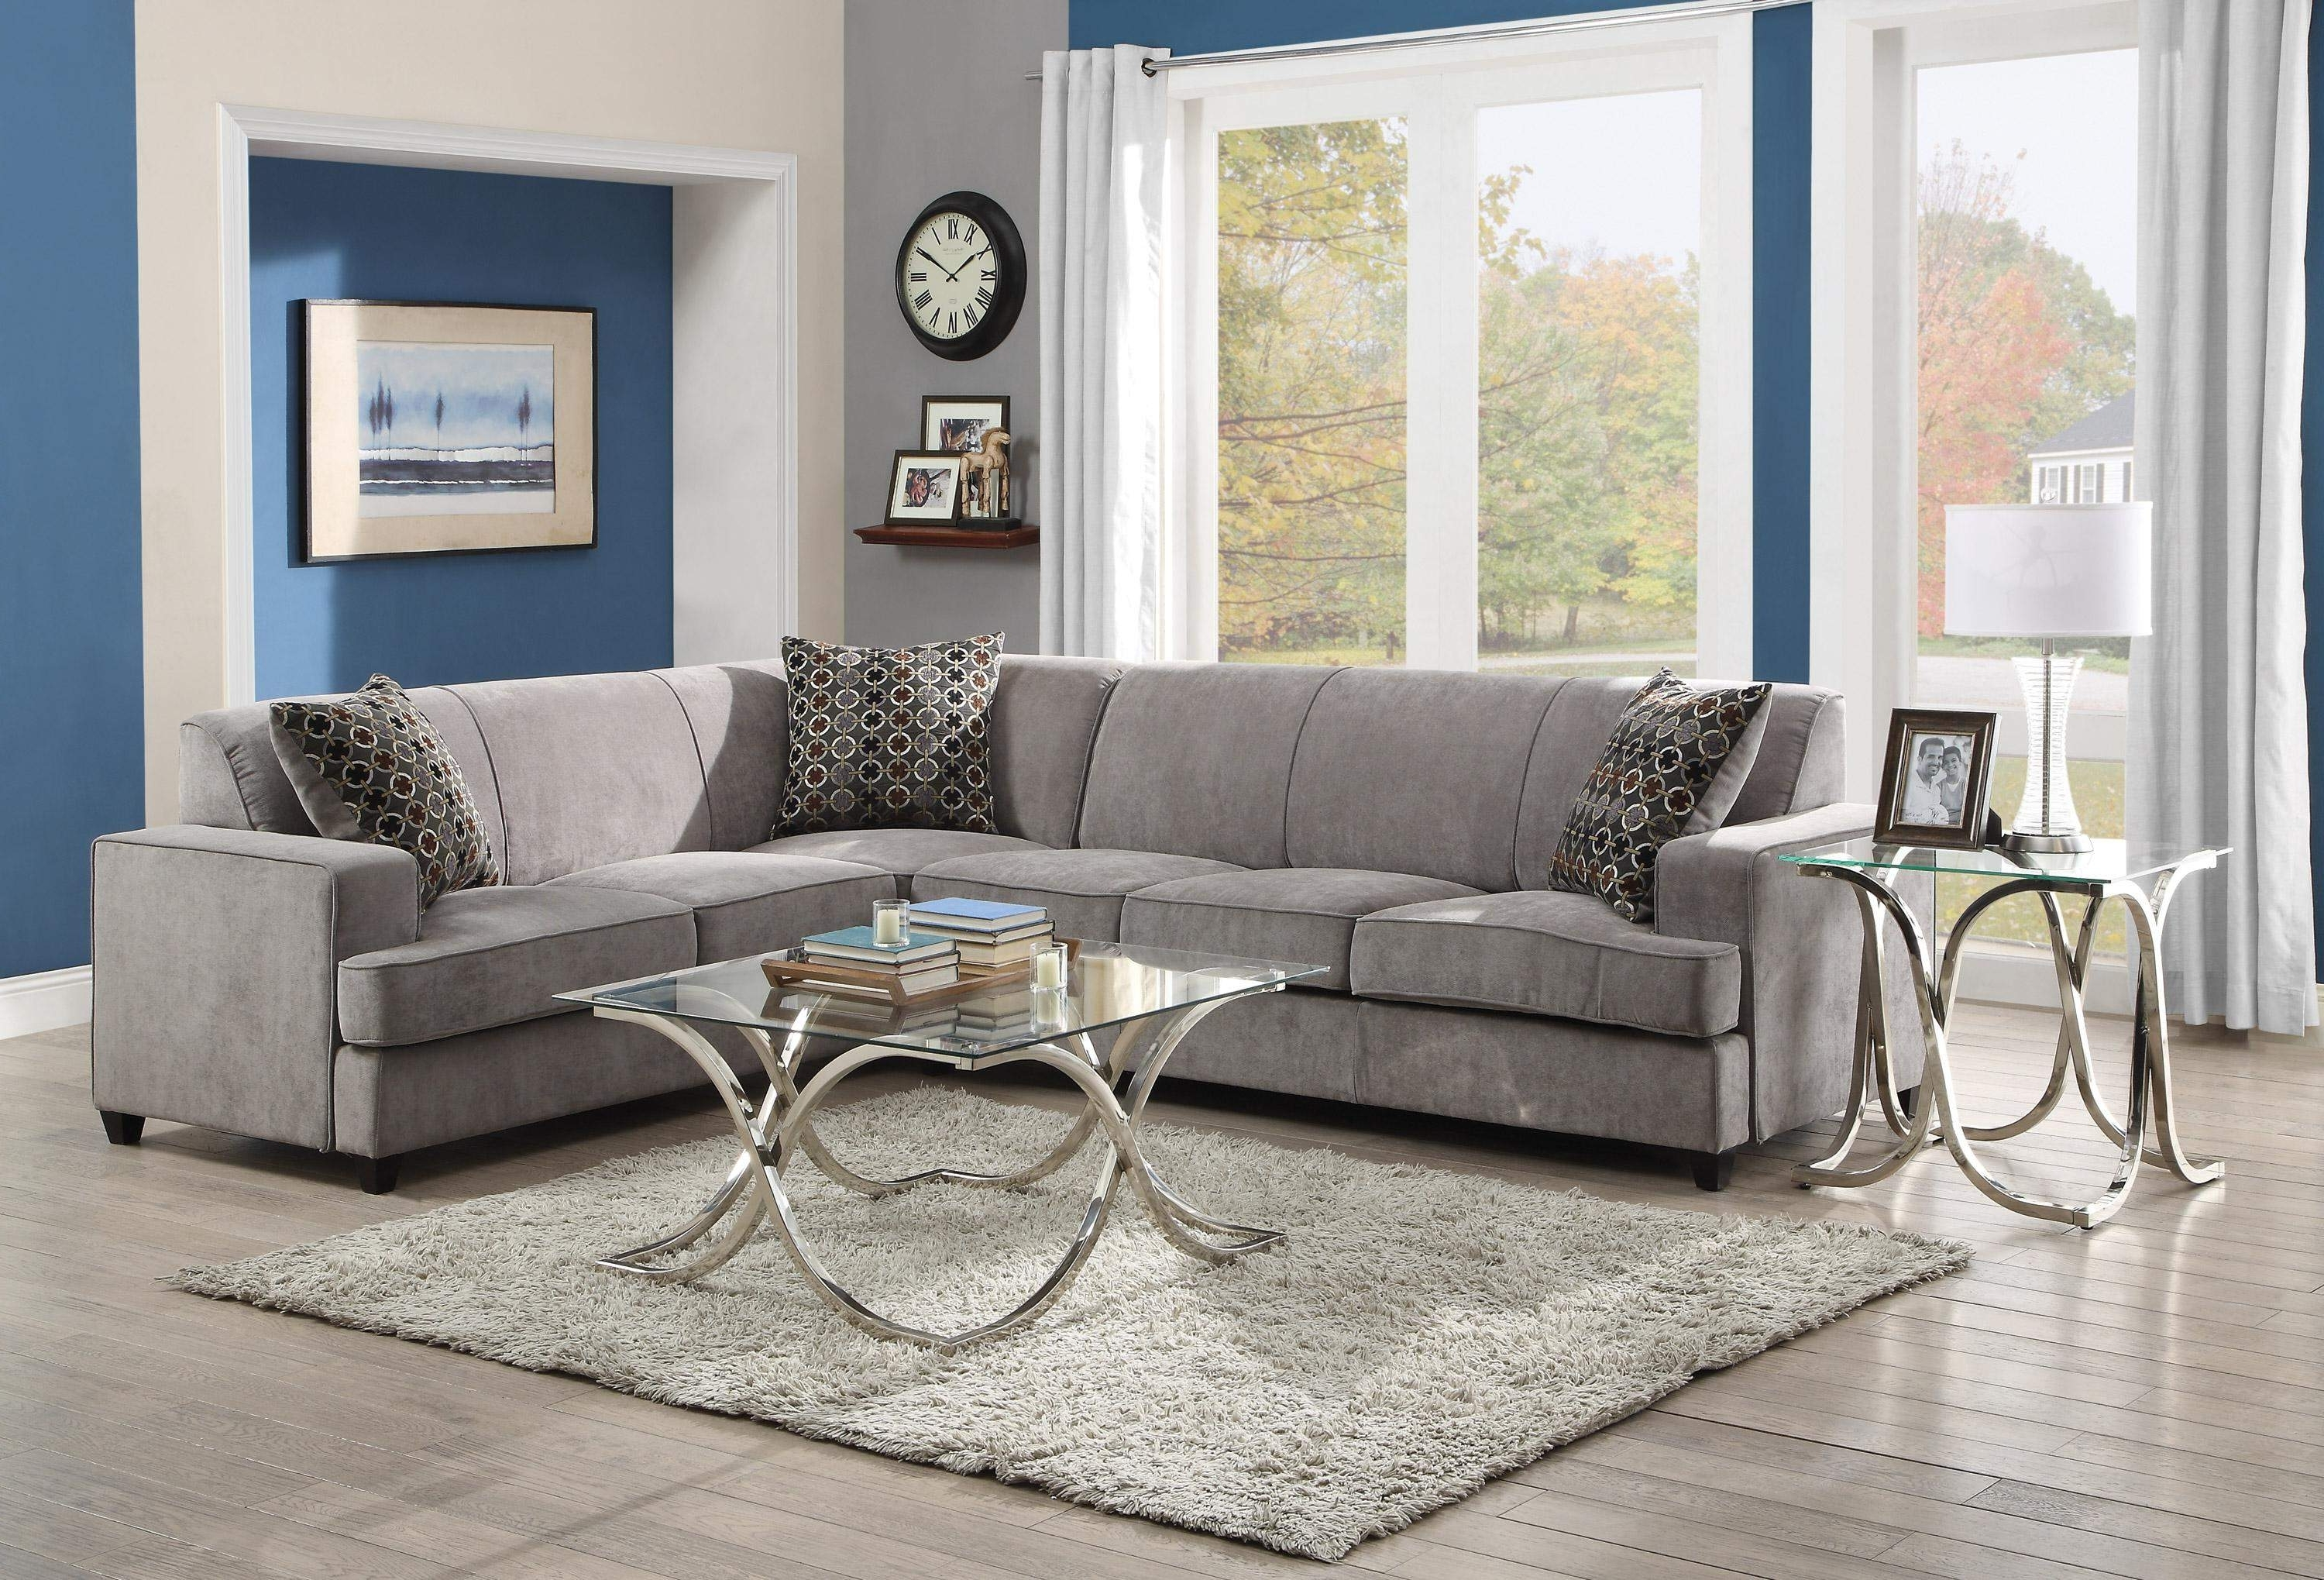 Philadelphia Sectional Sofas Inside Newest Tess Casual Grey Fabric Sectional Sofa For Corners With Queen Size (View 4 of 15)